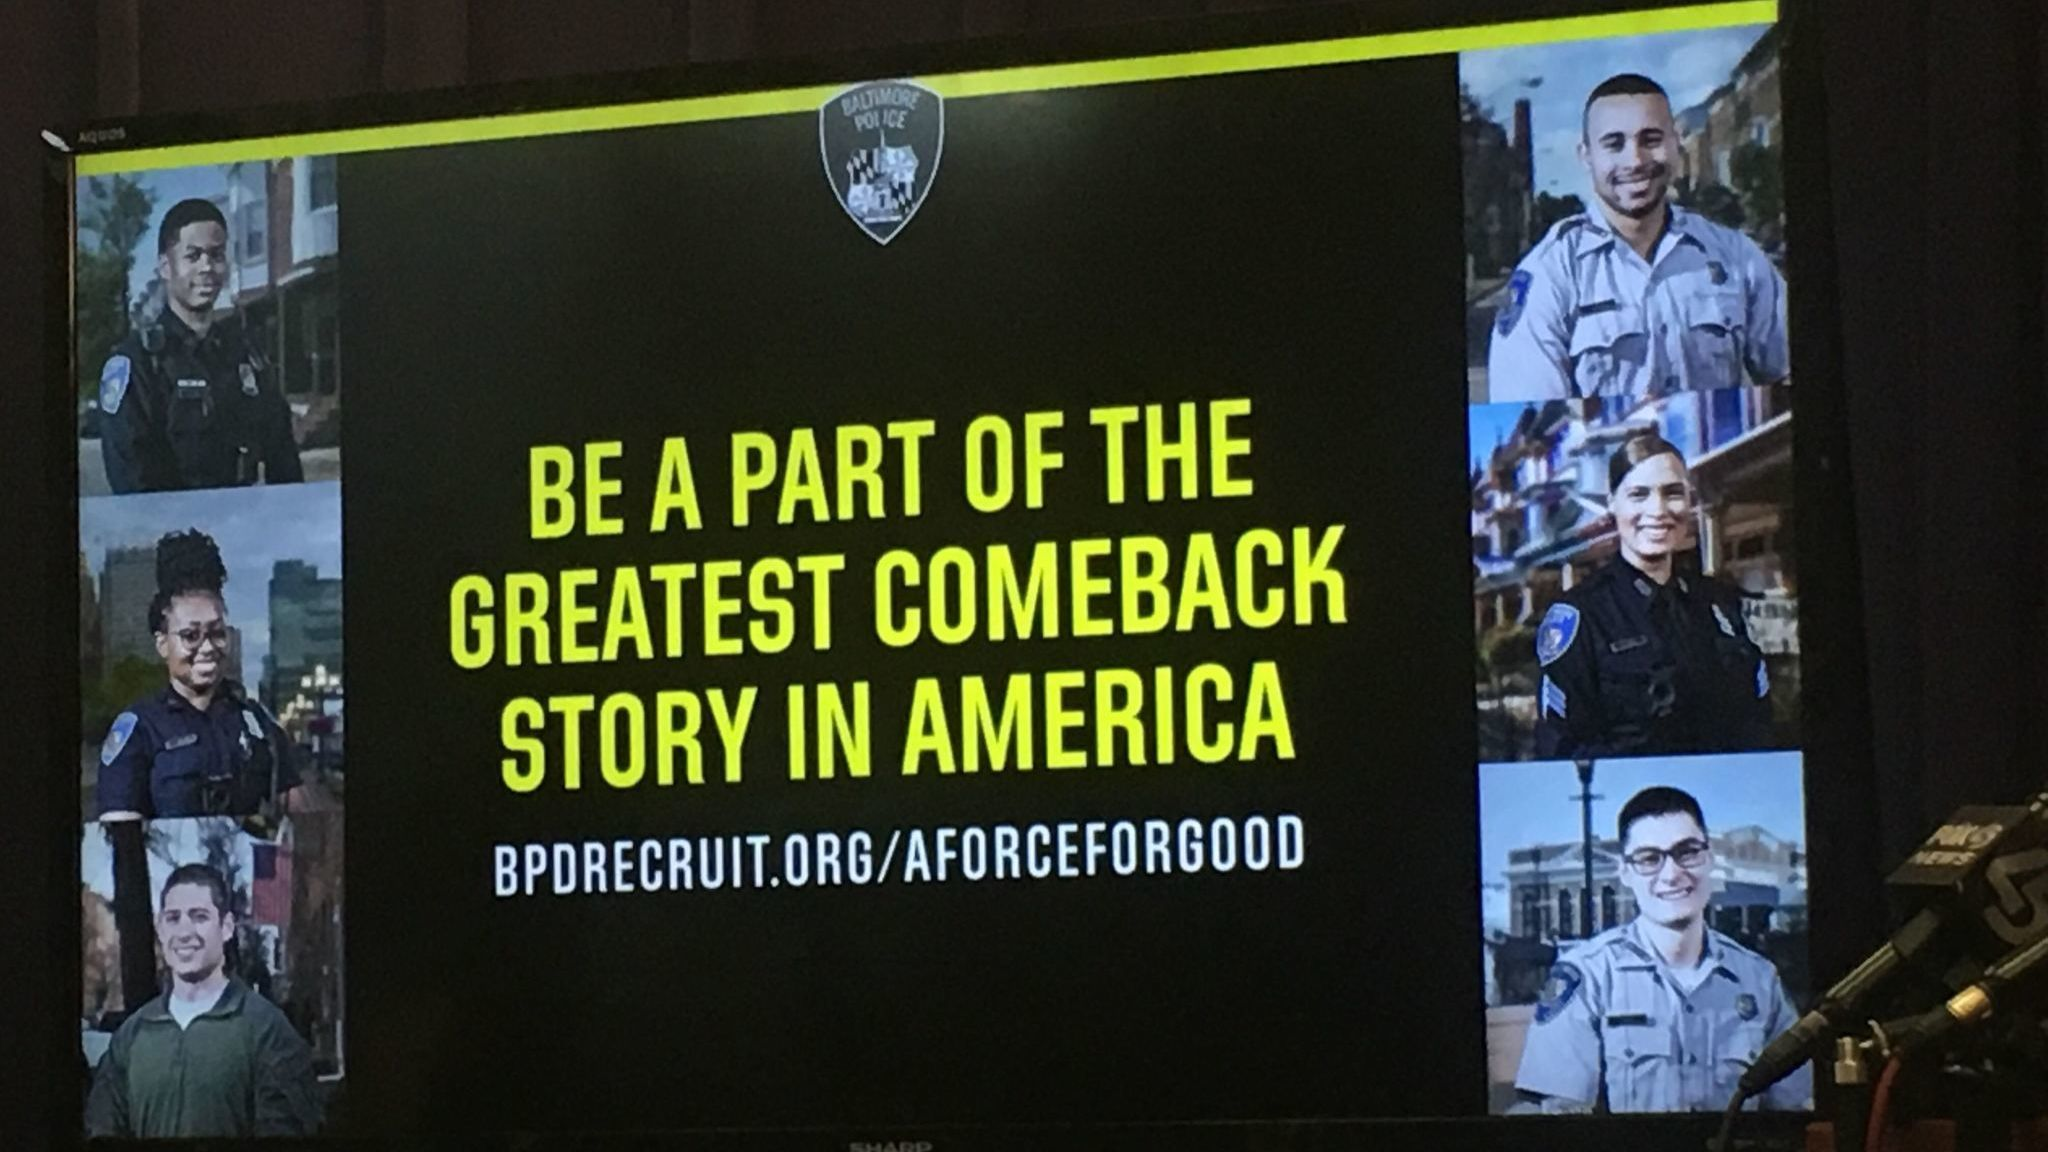 Aspirations of 'The greatest comeback story in America': Baltimore Police launch recruitment campaign